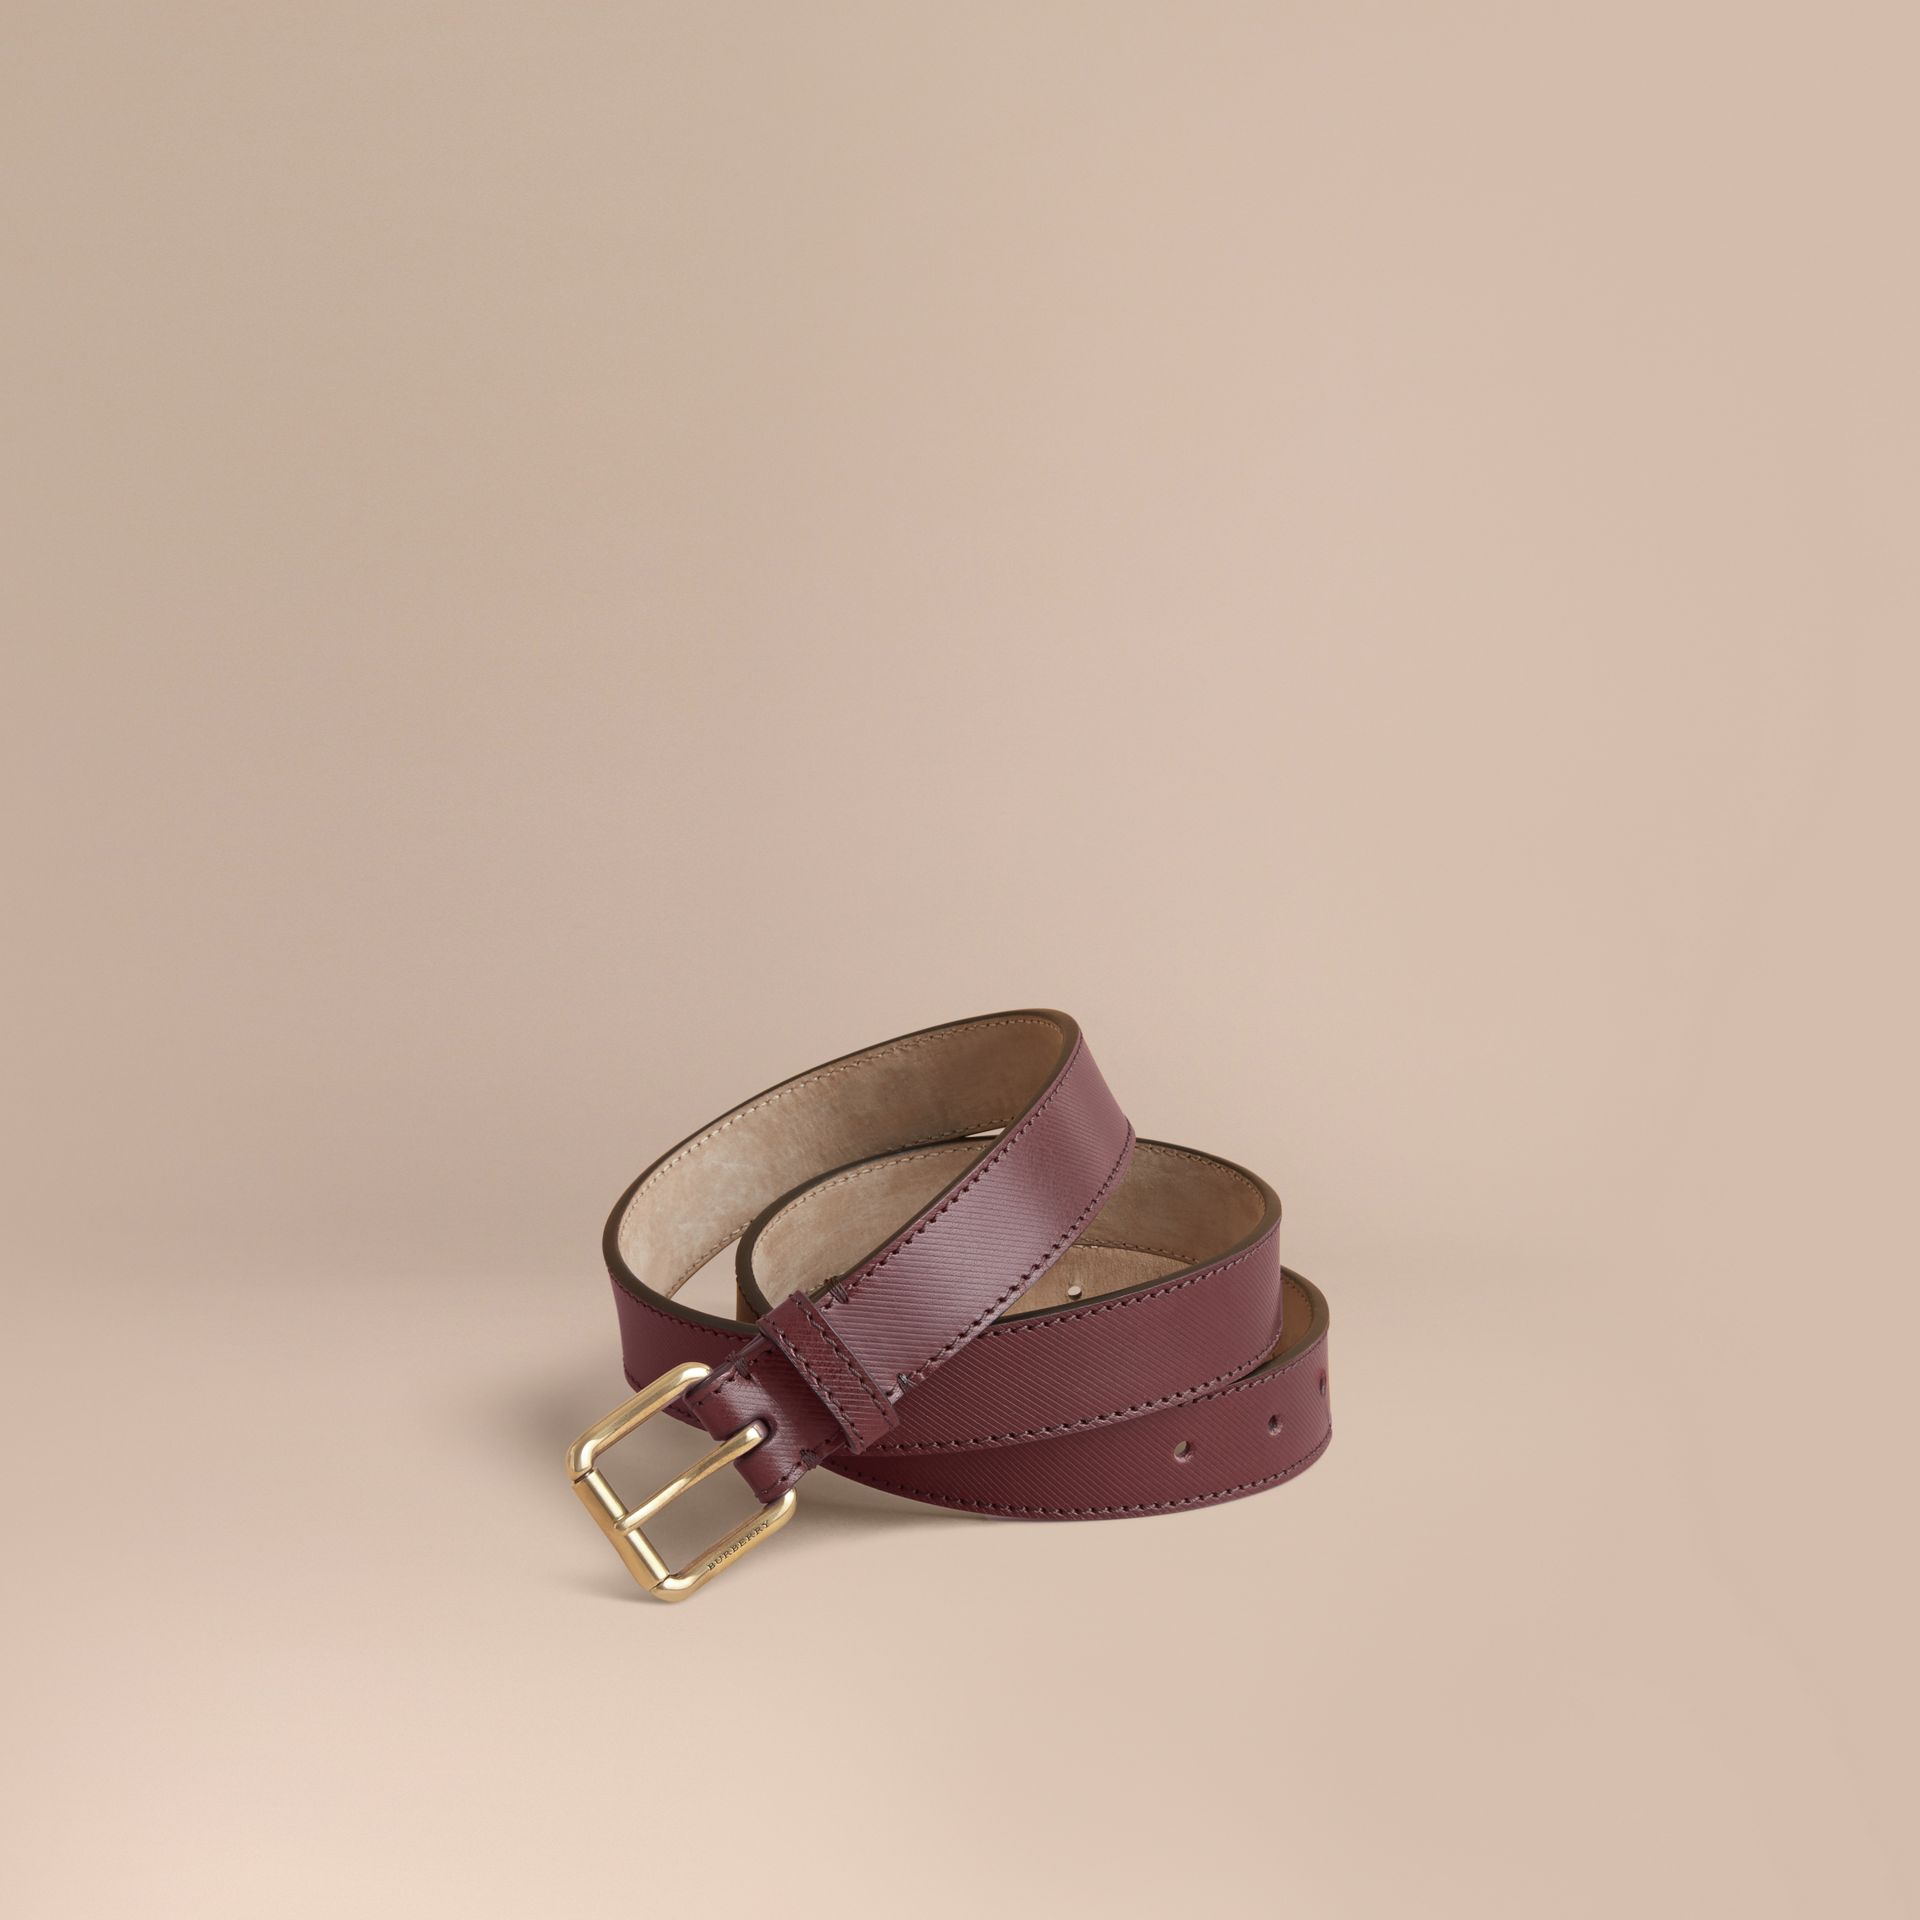 Trench Leather Belt in Wine - Men | Burberry United Kingdom - gallery image 1